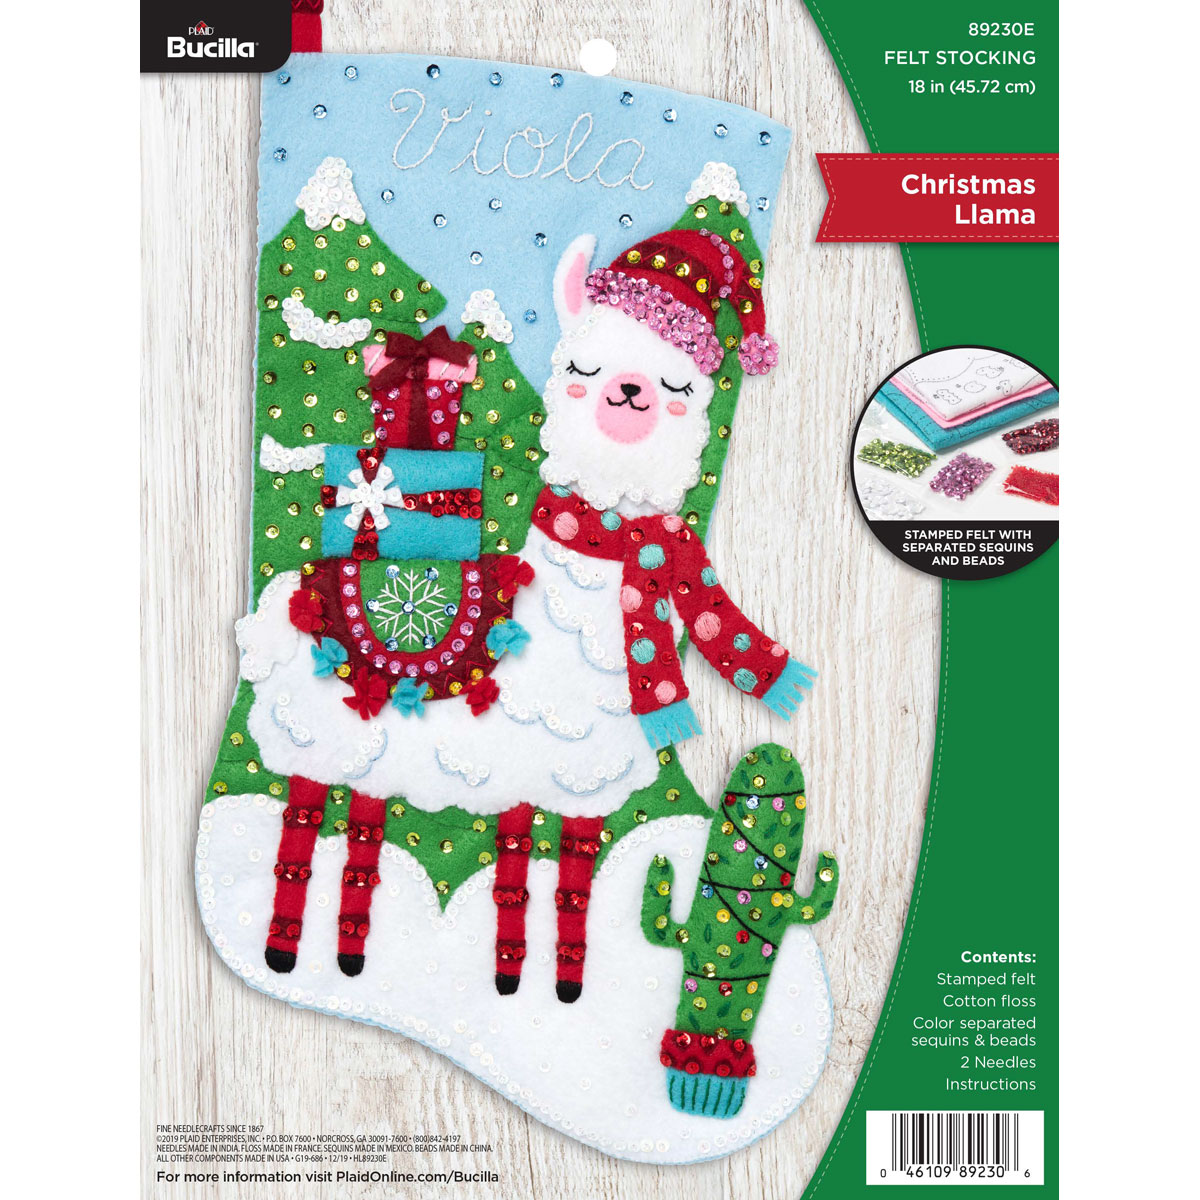 Bucilla ® Seasonal - Felt - Stocking Kits - Christmas Llama - 89230E